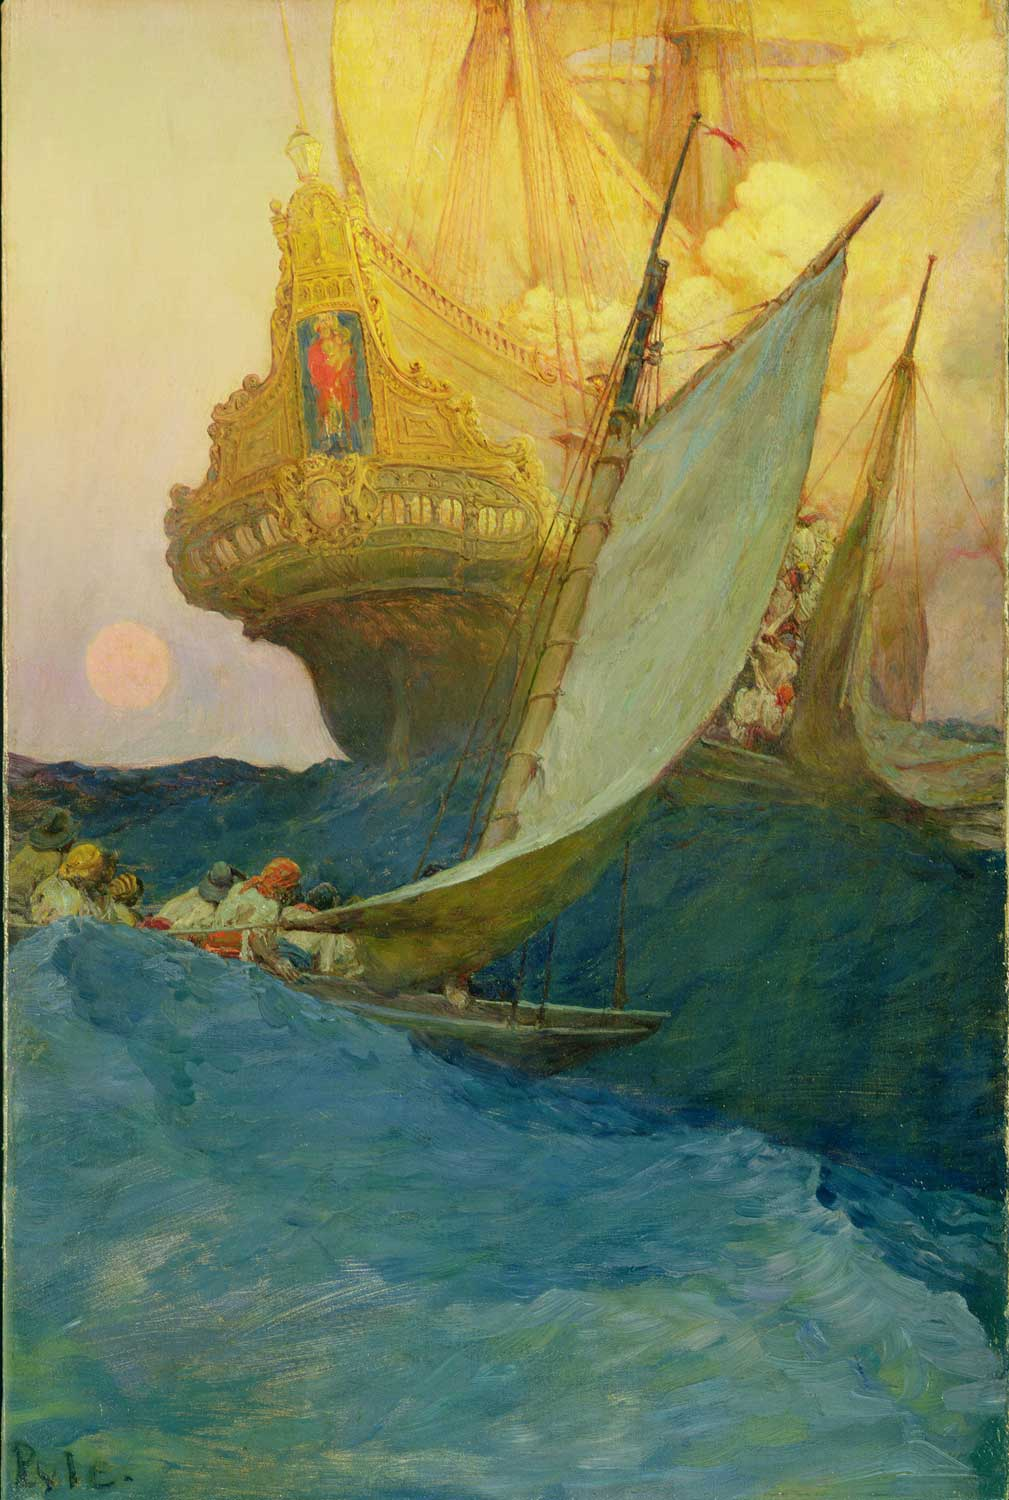 """""""An Attack on a Galleon,"""" Howard Pyle, 1905. Oil on canvas."""